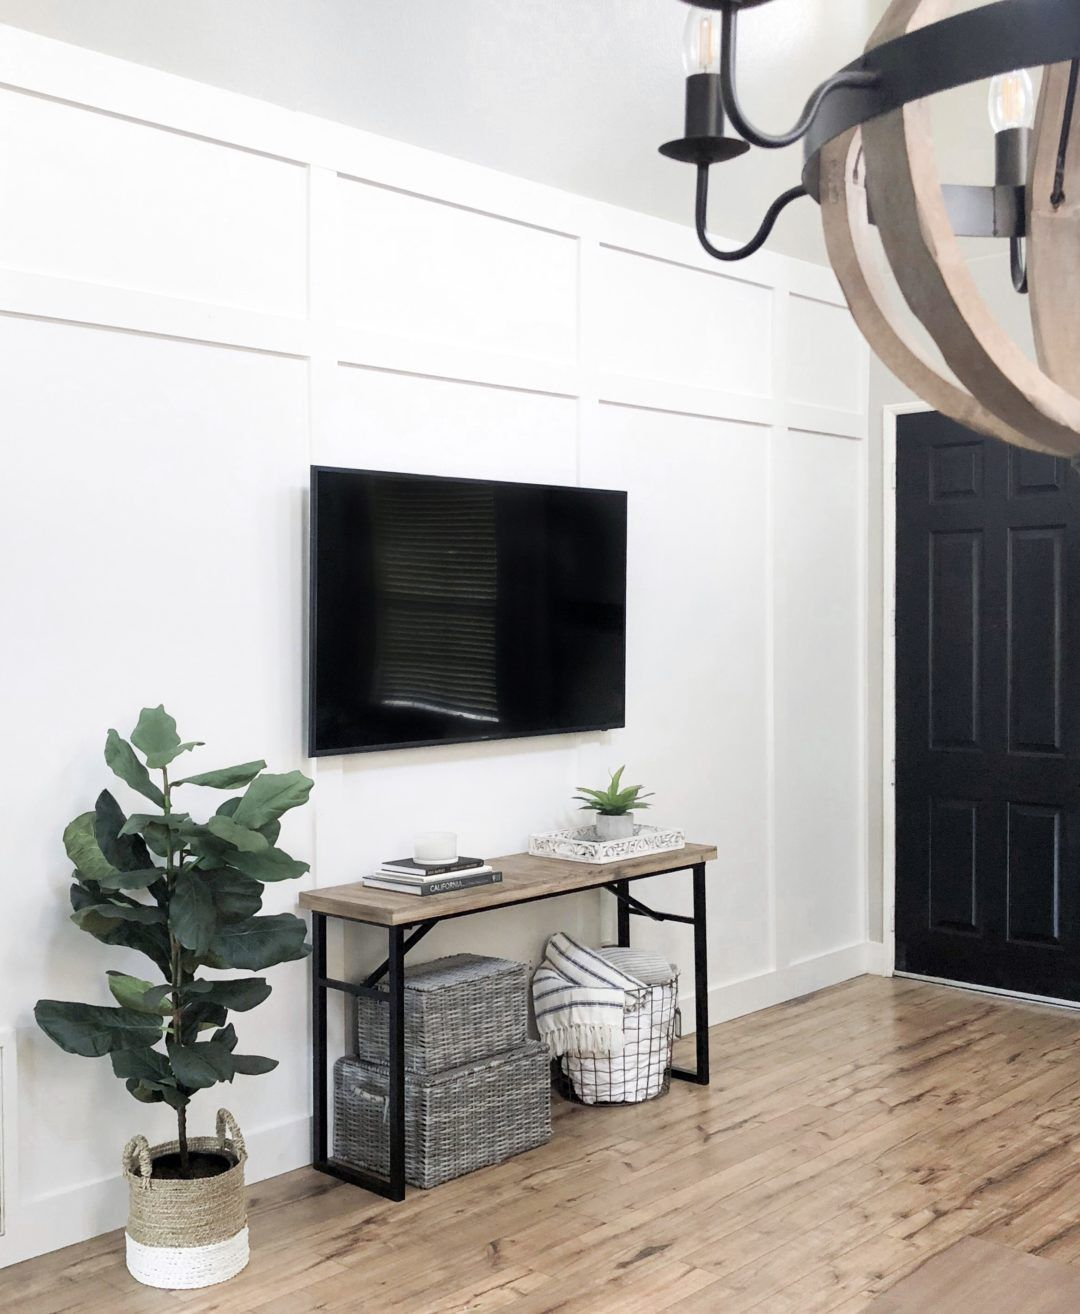 Accent Wall With Batten And Slidinf Door: Accent Walls In Living Room